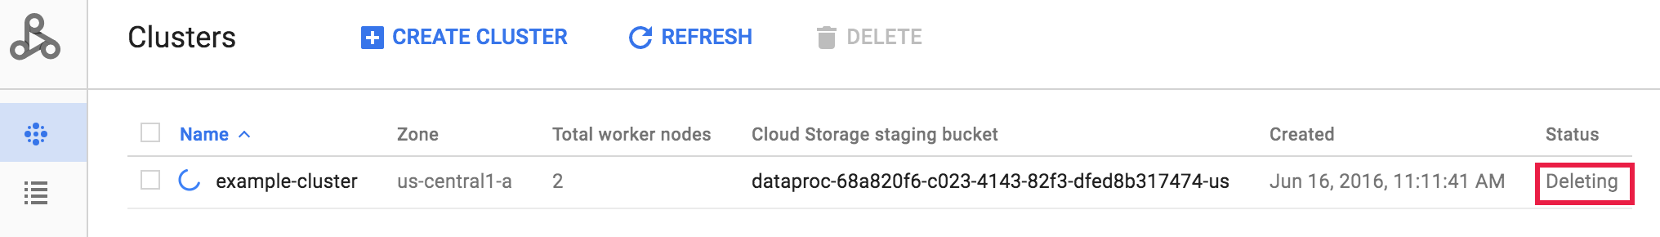 Dataproc cluster page confirms that the cluster is deleted.